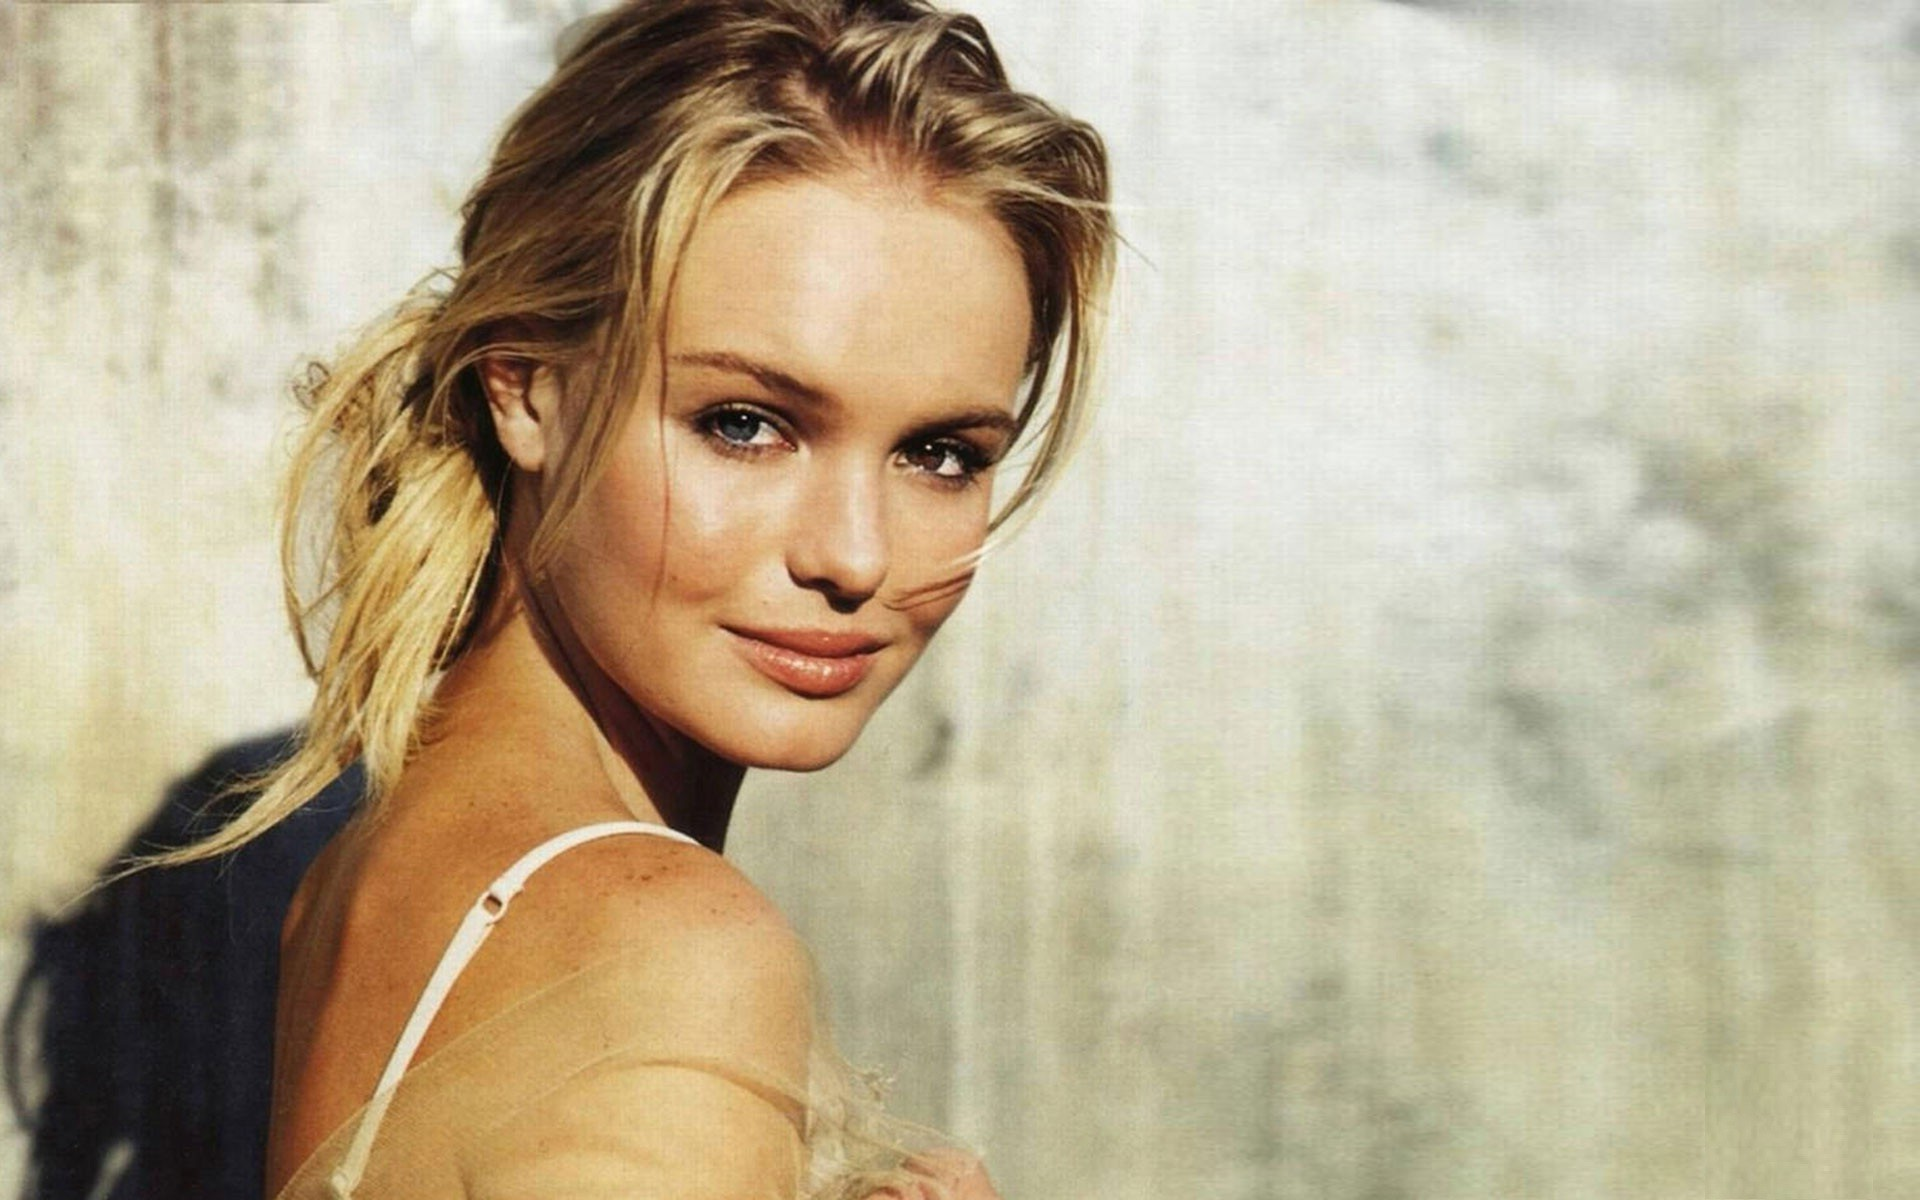 1920x1200 - Kate Bosworth Wallpapers 9